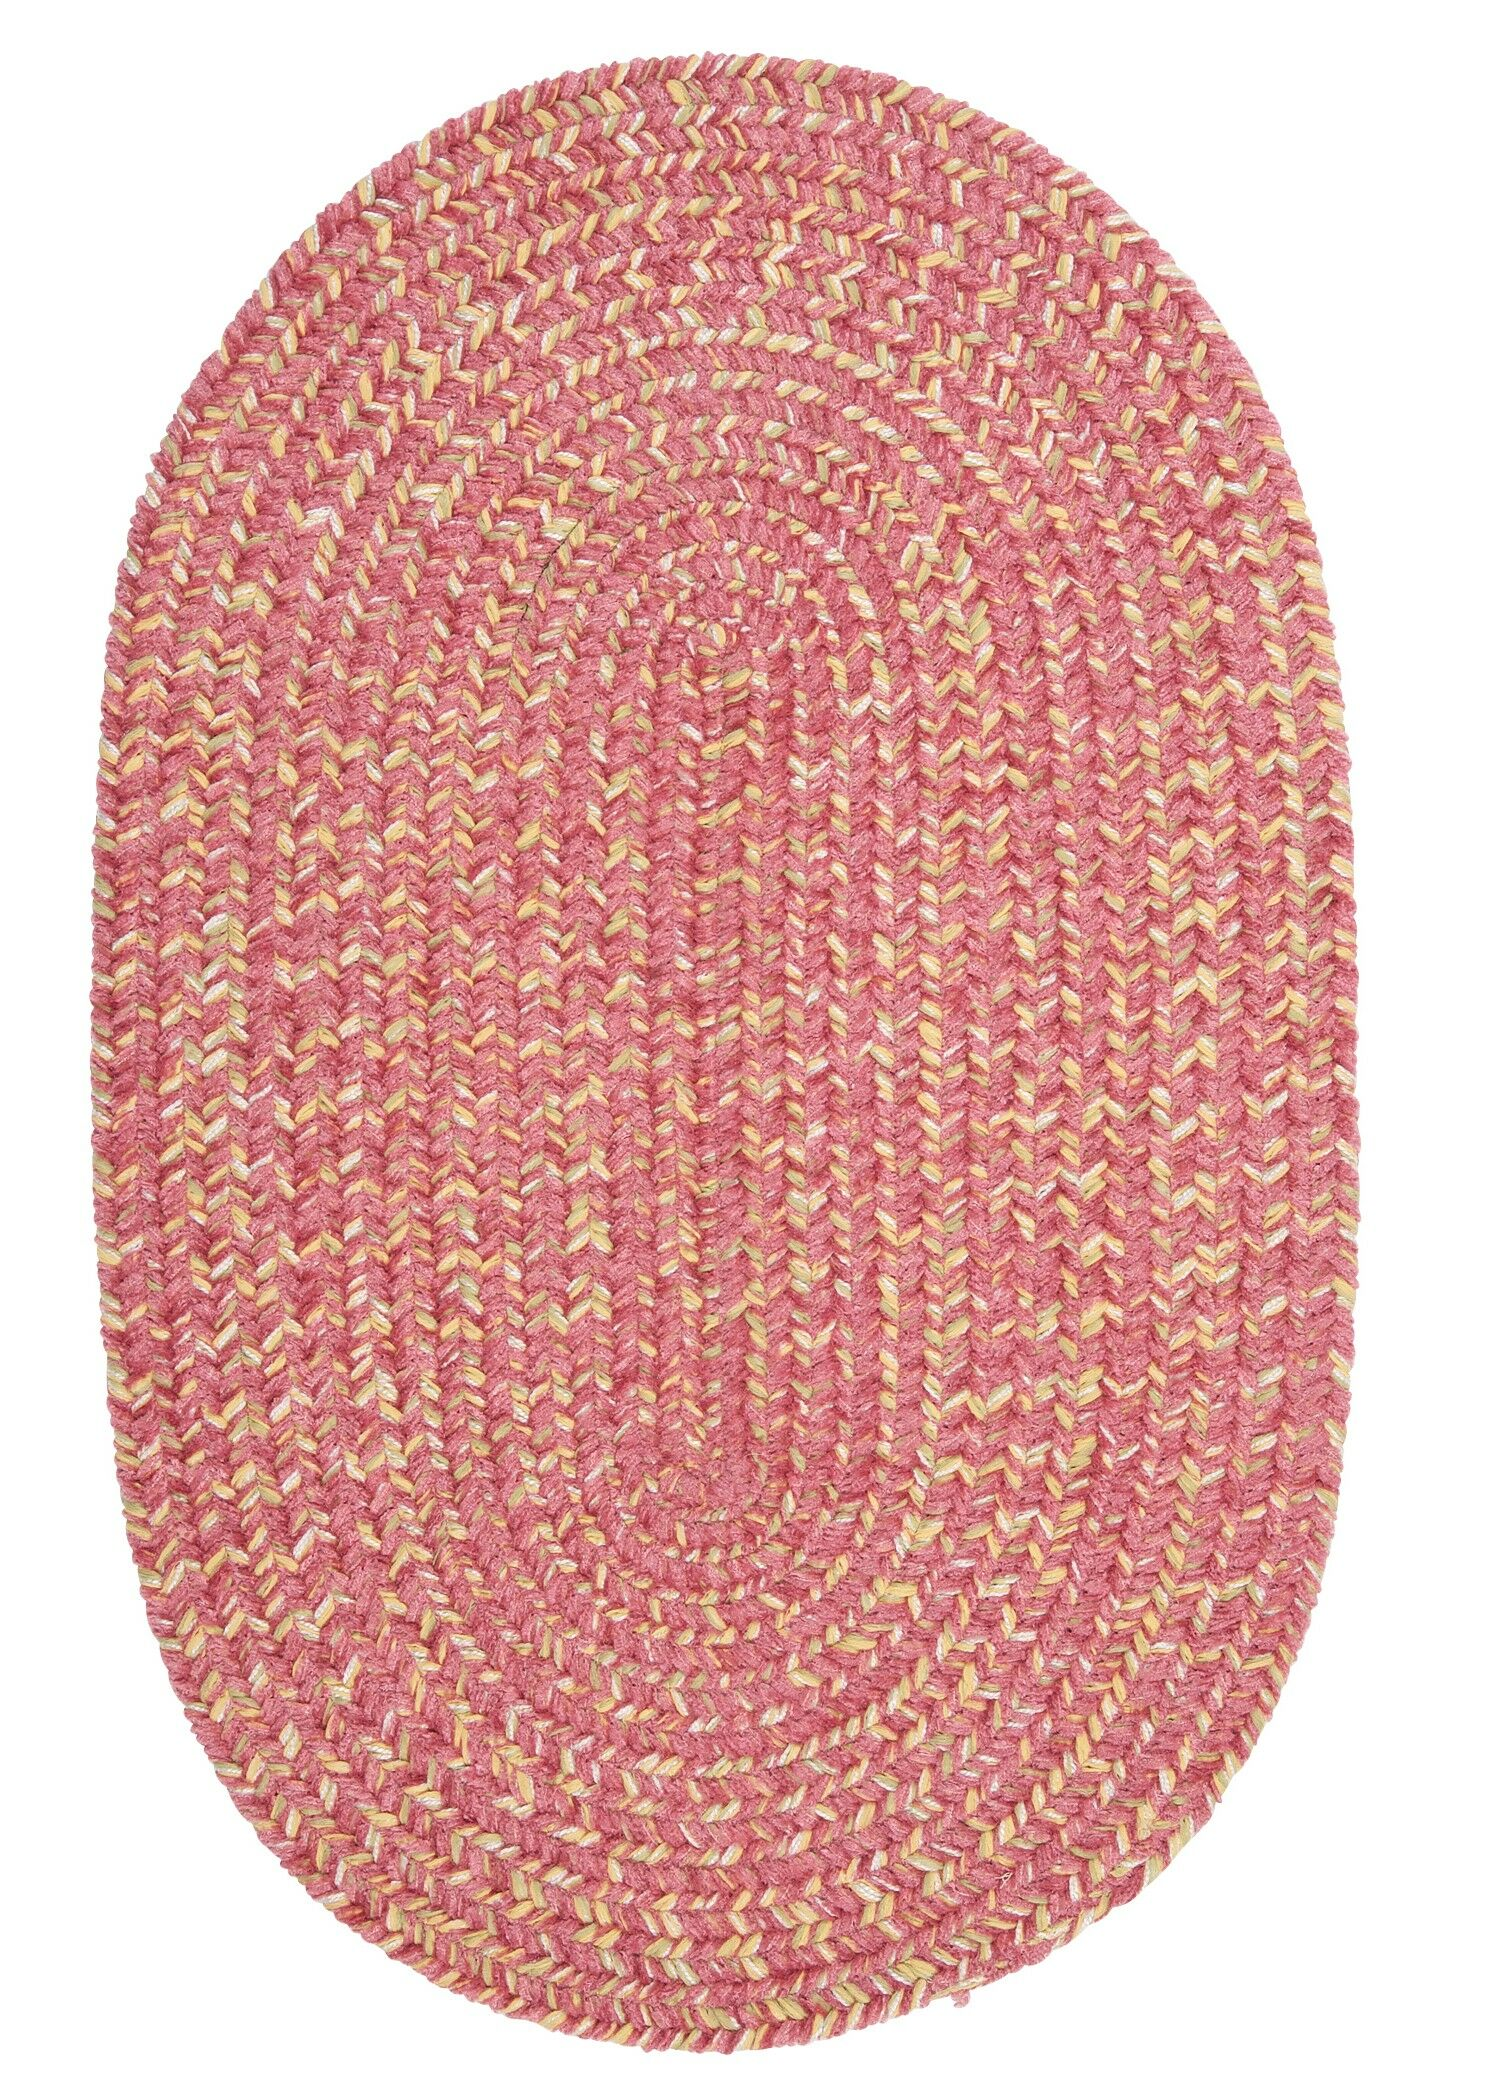 Annet Camerum Area Rug Rug Size: Oval 8' x 11'